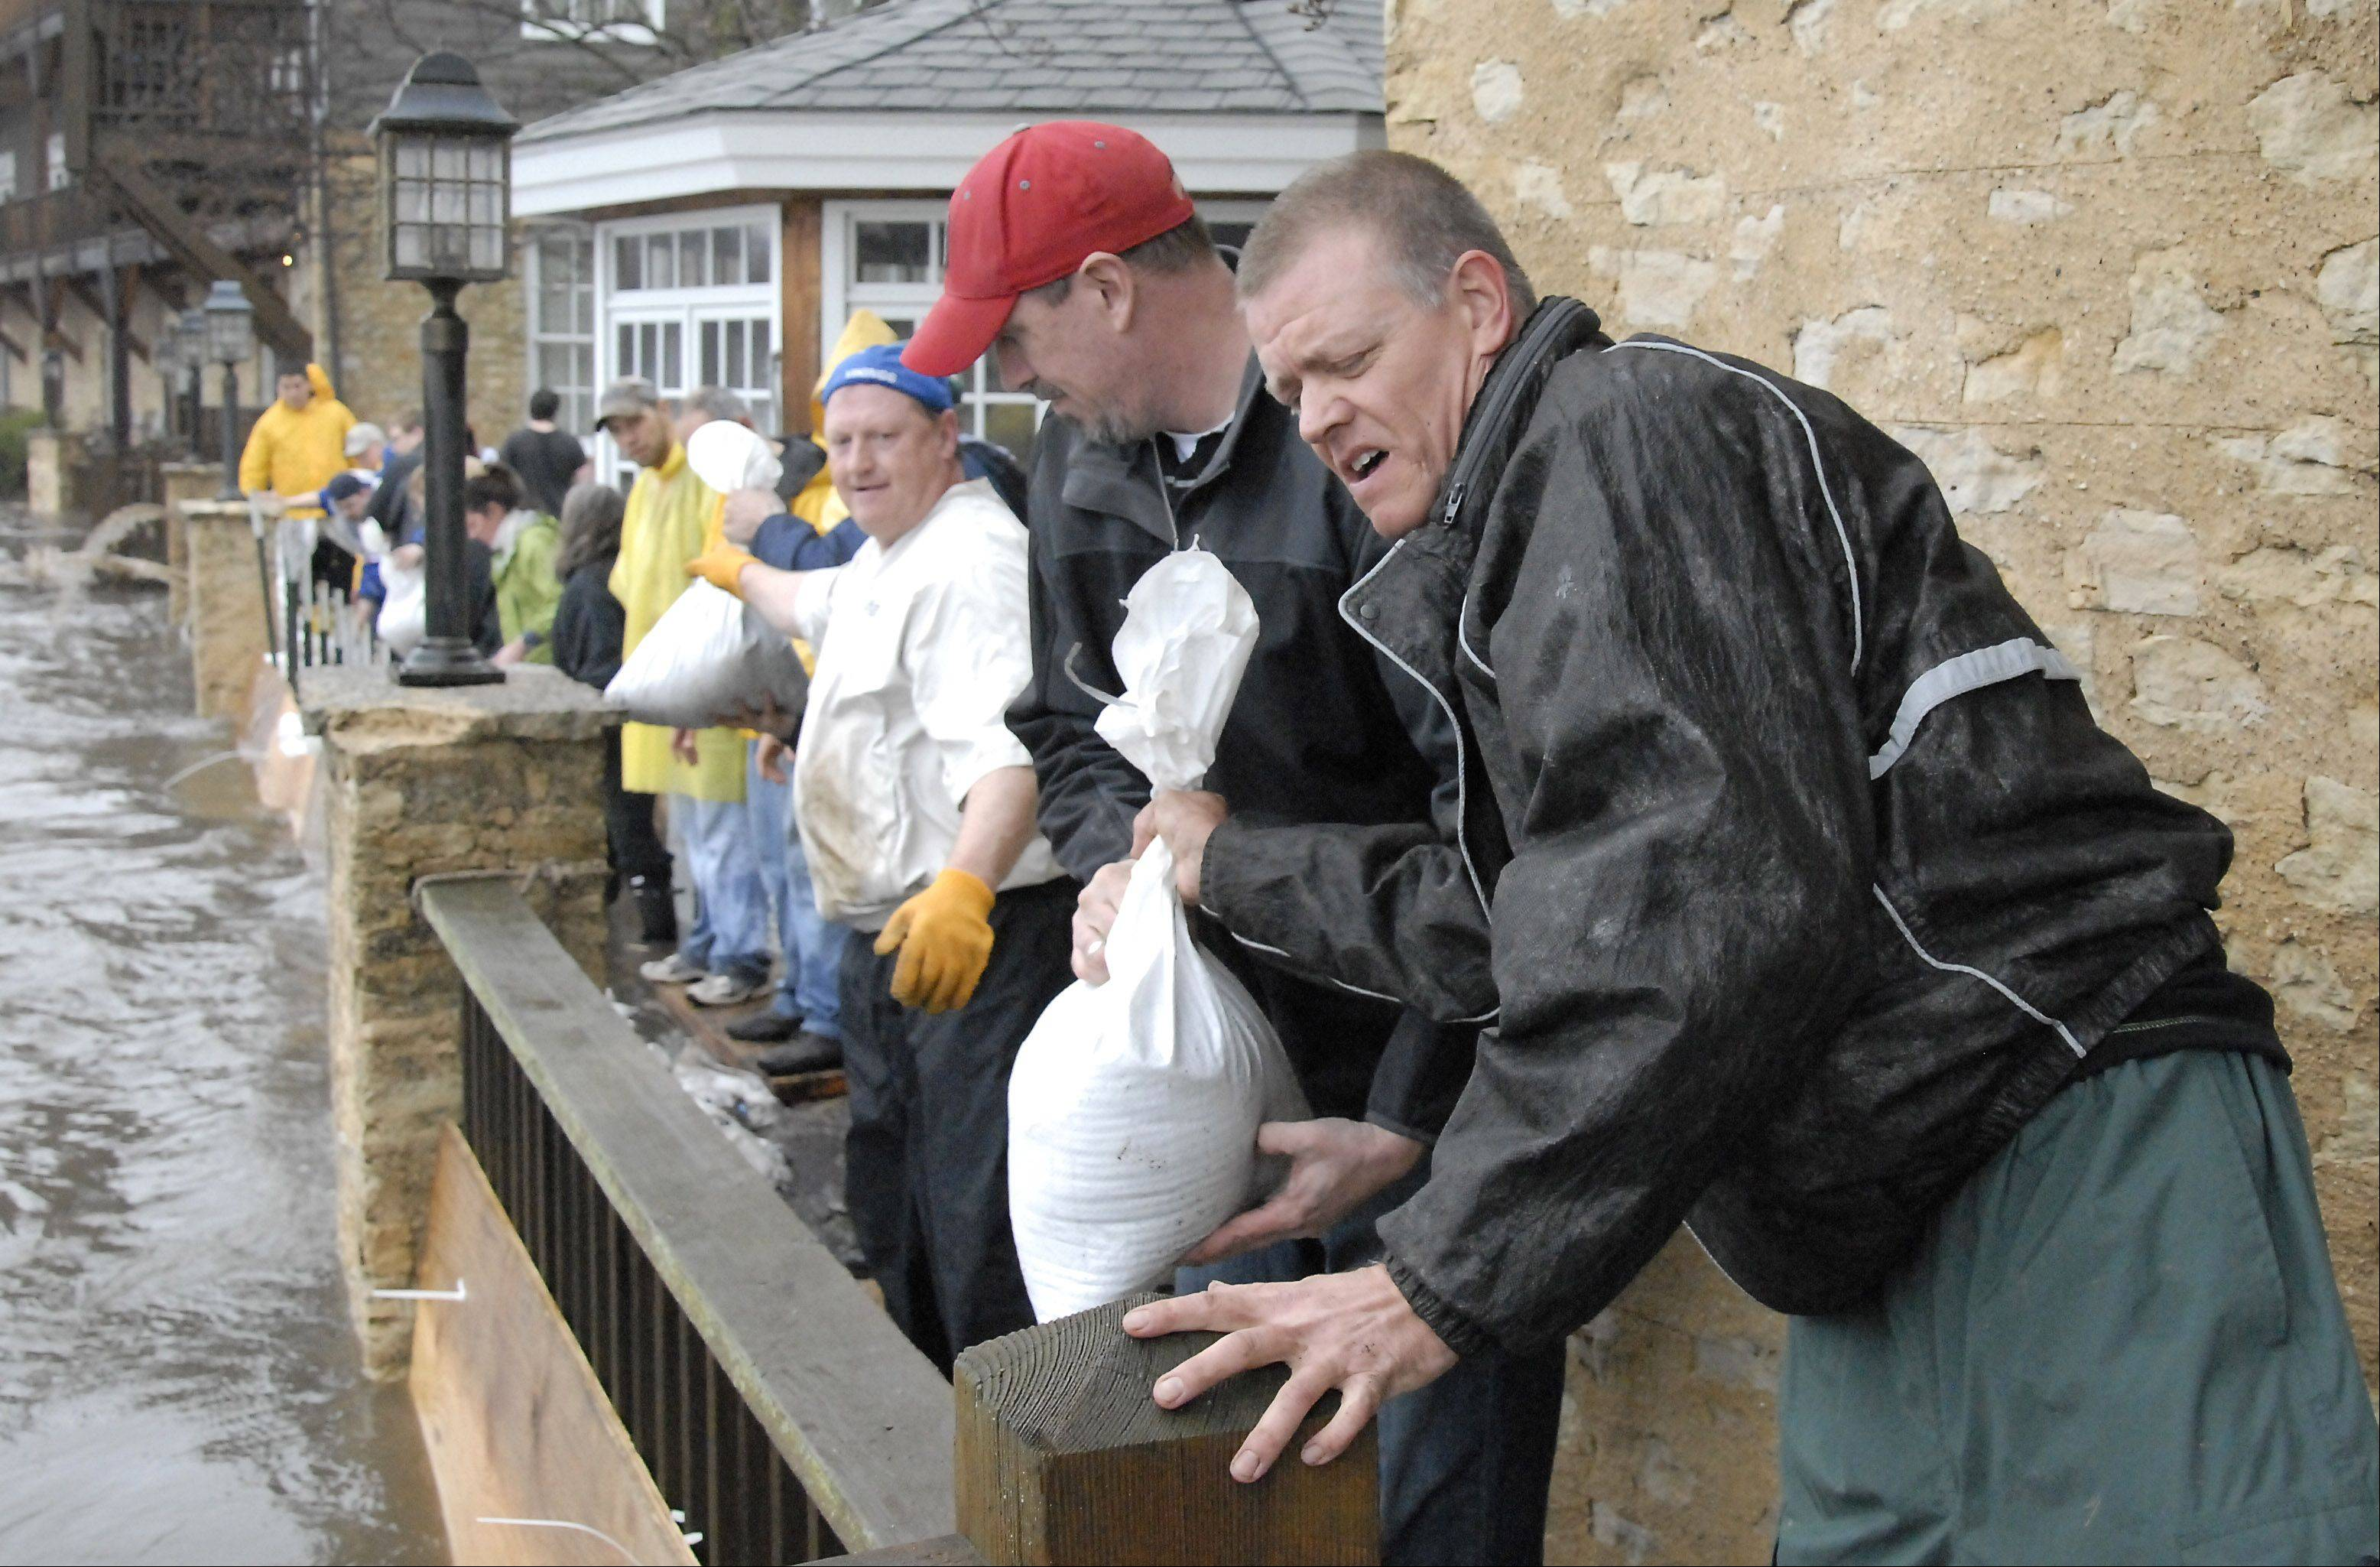 Volunteer sandbaggers Chris Schmedes of Geneva takes a bag from Brad Umholtz of South Elgin as they try to stop the Fox River from flooding the Herrington Inn April 18 in Geneva. Herrington owner Paul Ruby put out the call for help early and people came by the dozens to help out.